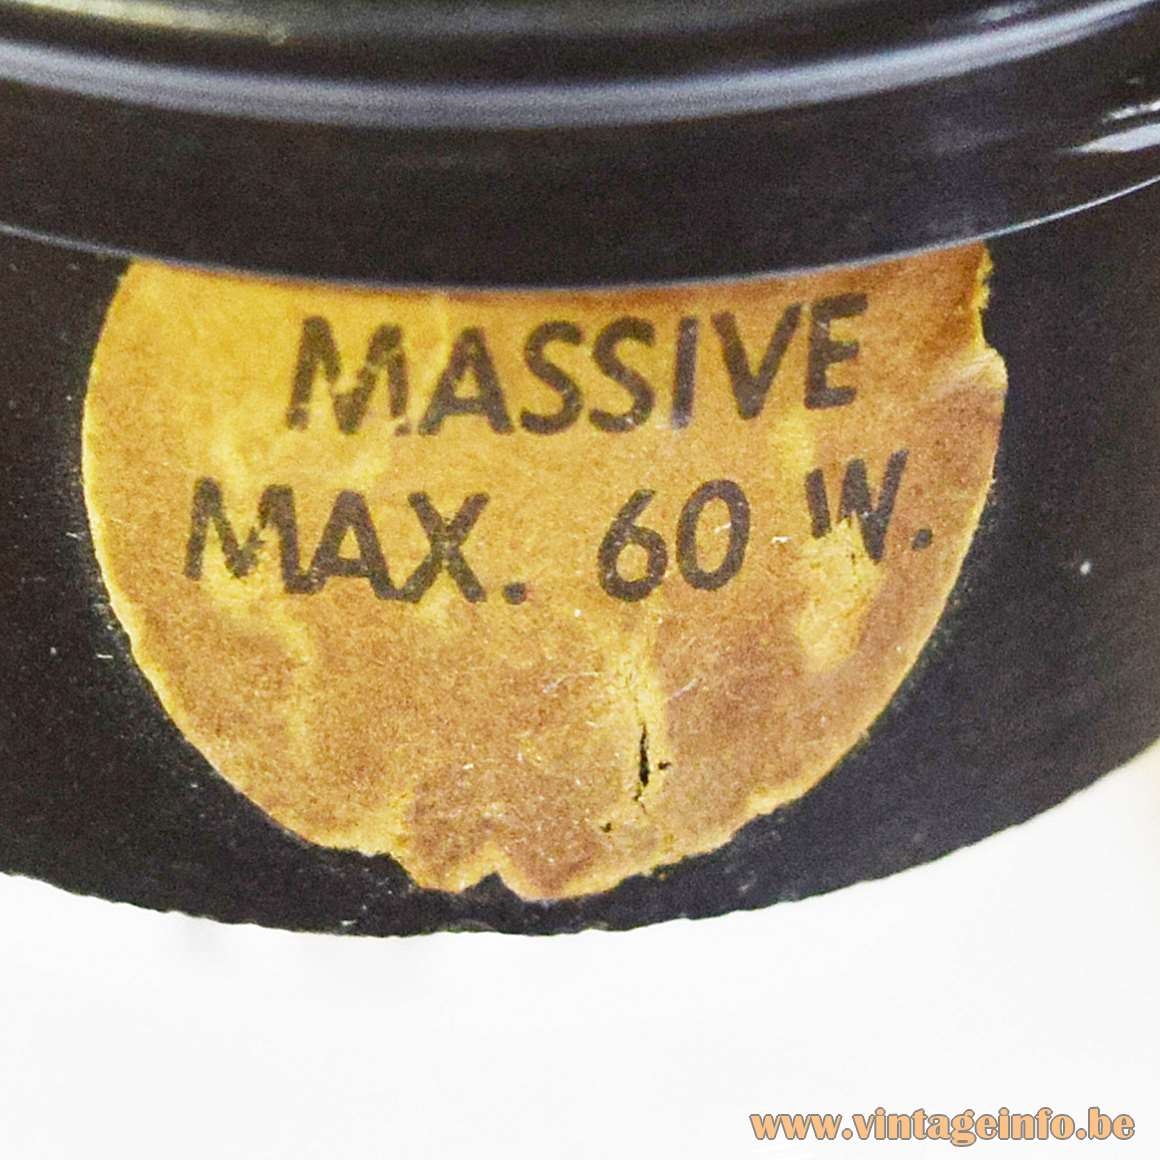 Massive Max. 60 W. Label